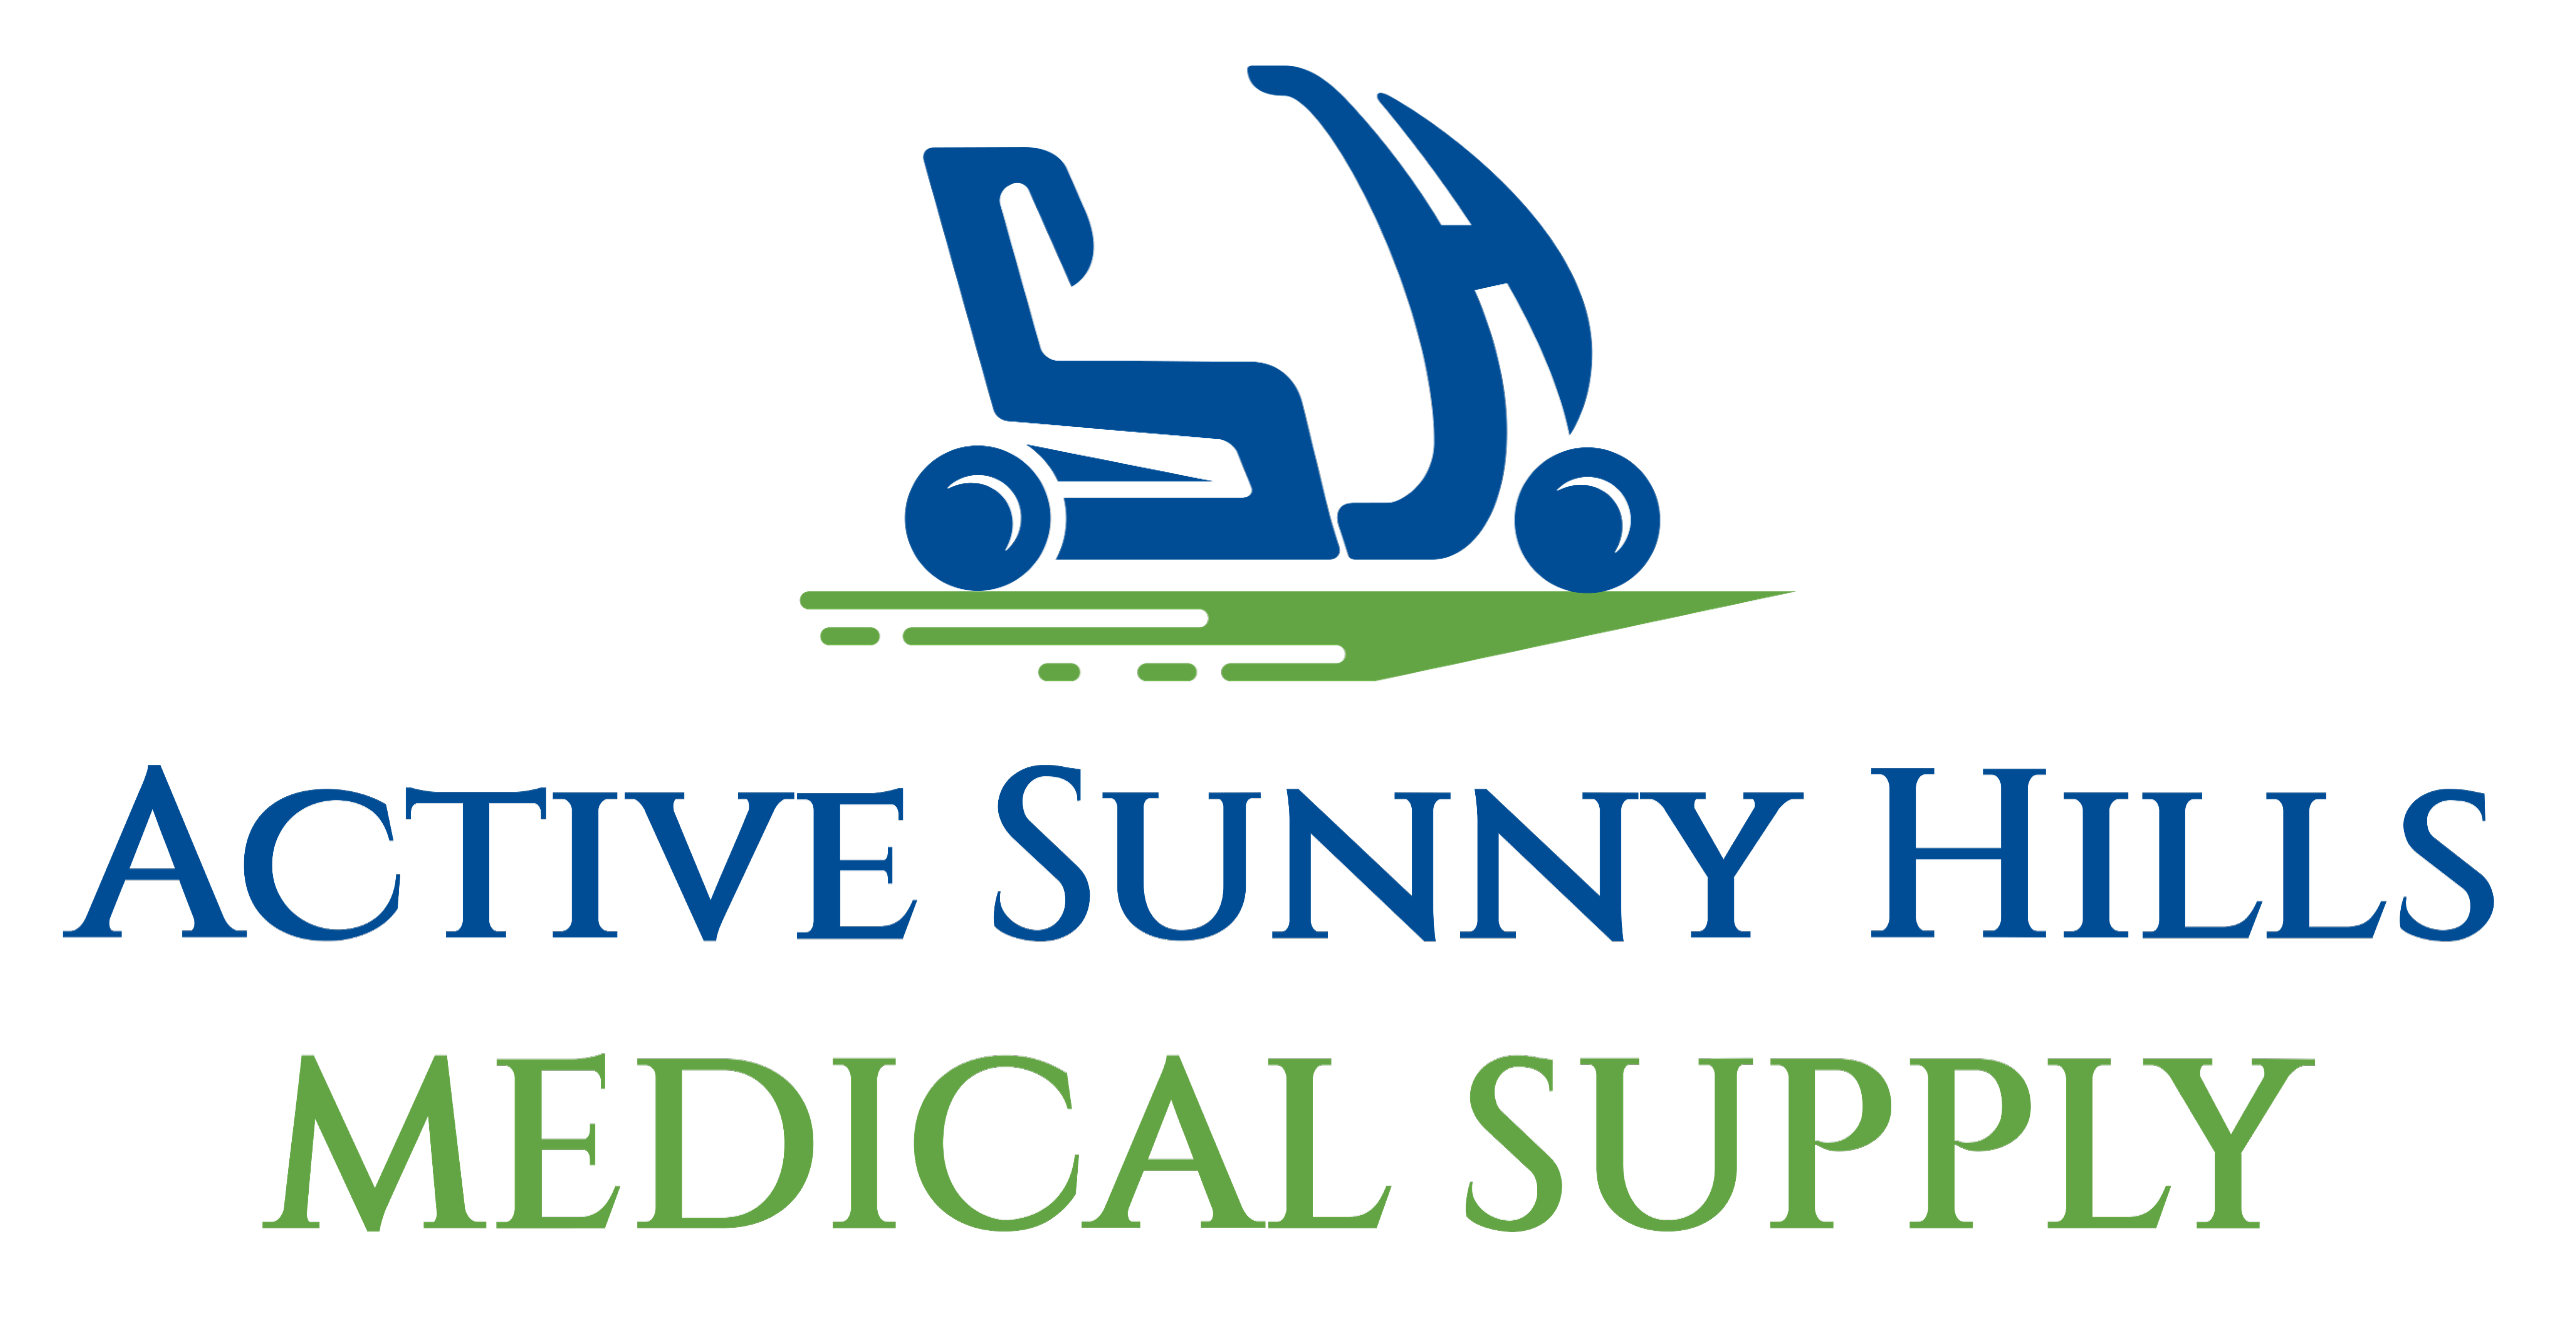 Active Sunny Hills Medical Supply